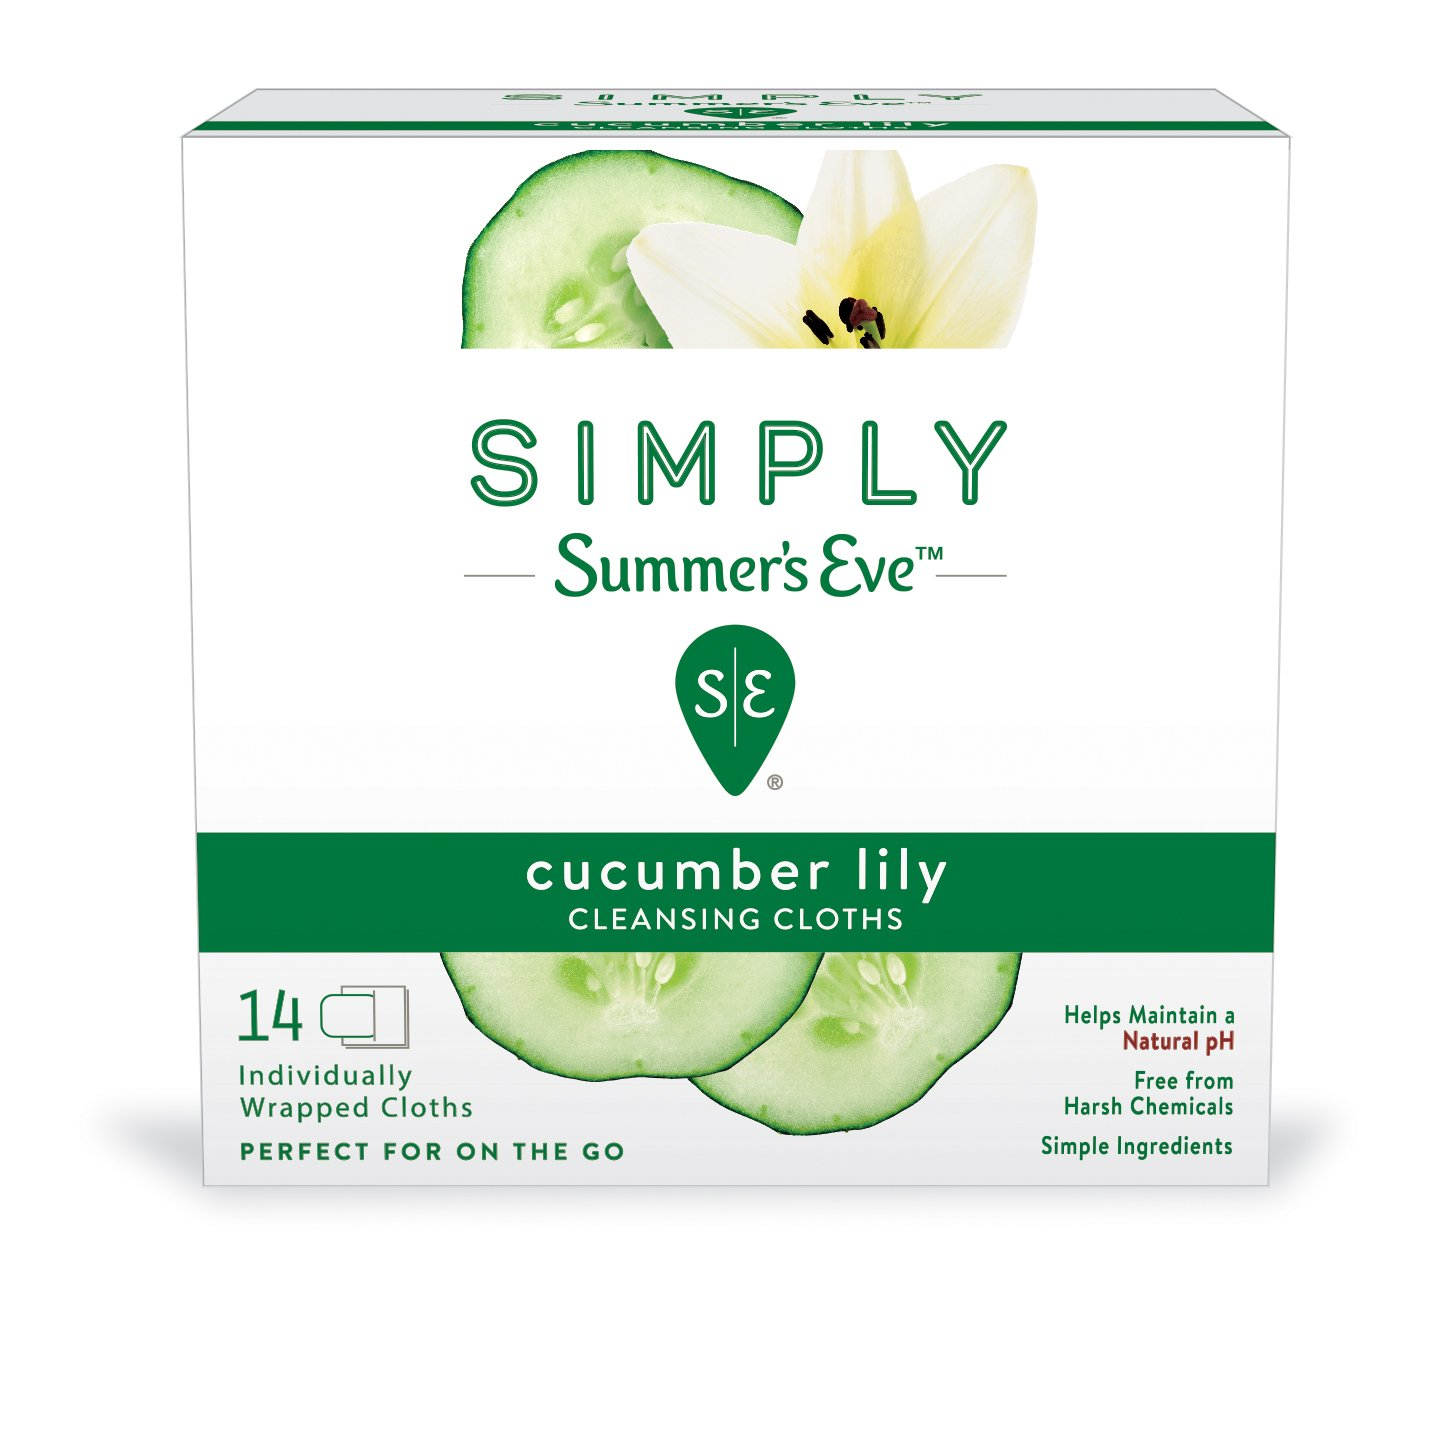 Simply Summer's Eve Cleansing Cloths, Cucumber Lily, 14 Count (Pack of 2)